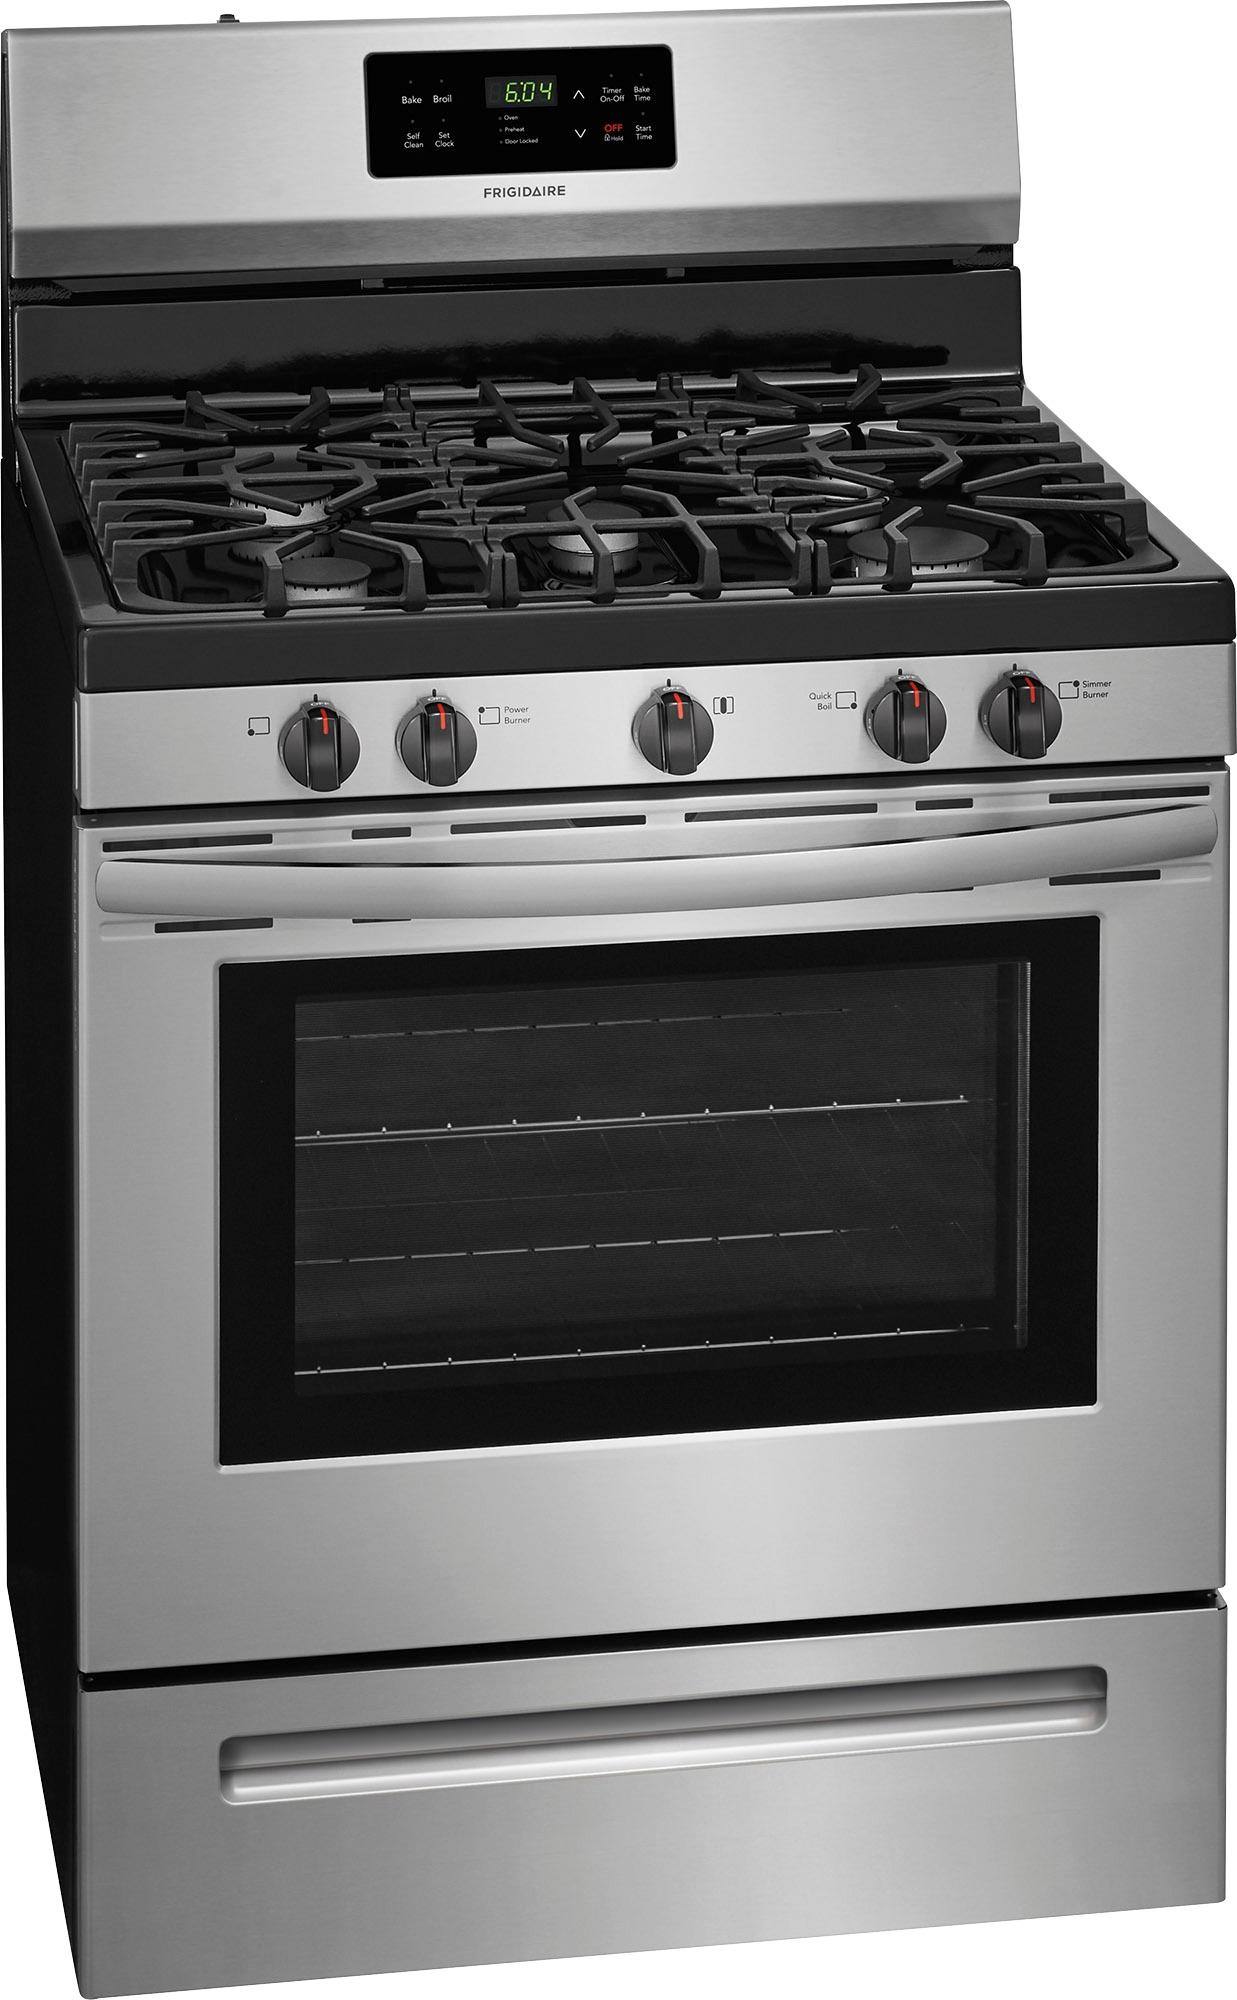 Frigidaire Stove Parts Canada Frigidaire Self Cleaning Freestanding Gas Range Stainless Steel